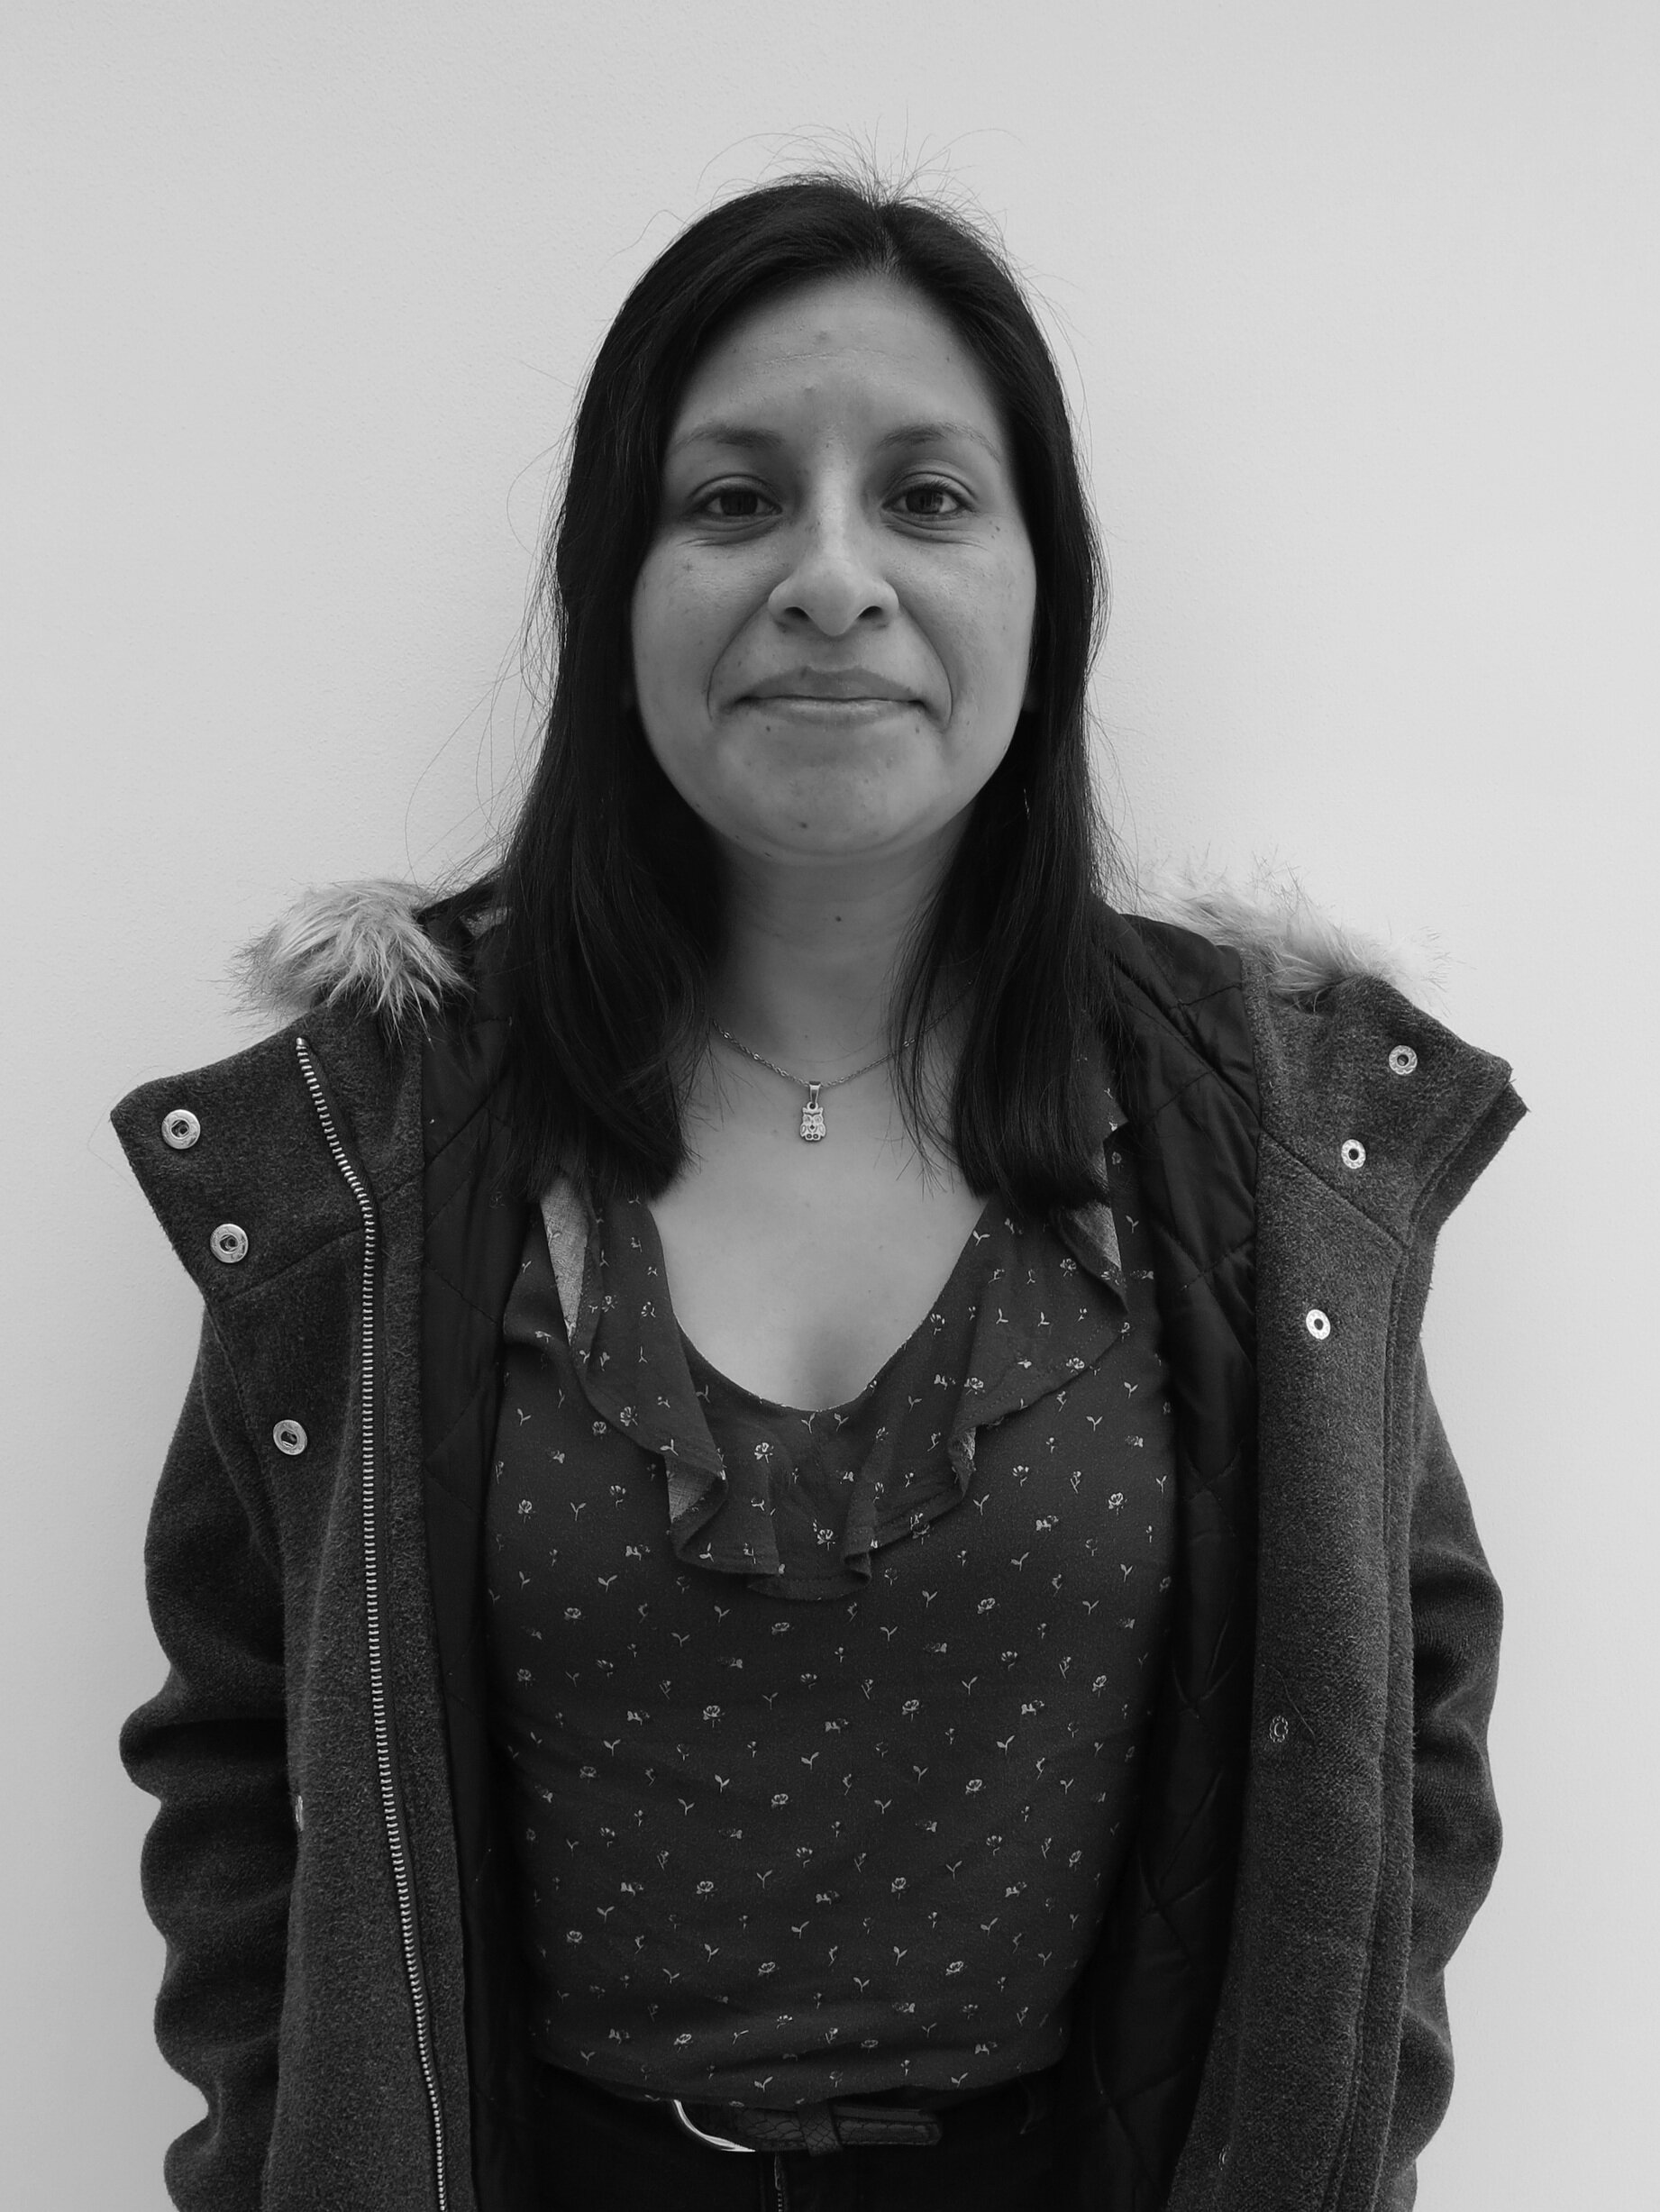 Rocío // GRAPHIC DESIGNER   She is in charge of the graphic design department . She studied at Peruvian University of Applied Sciences (UPC). She loves making pop-up fairy tales, reading about astrology, and collecting packagings.